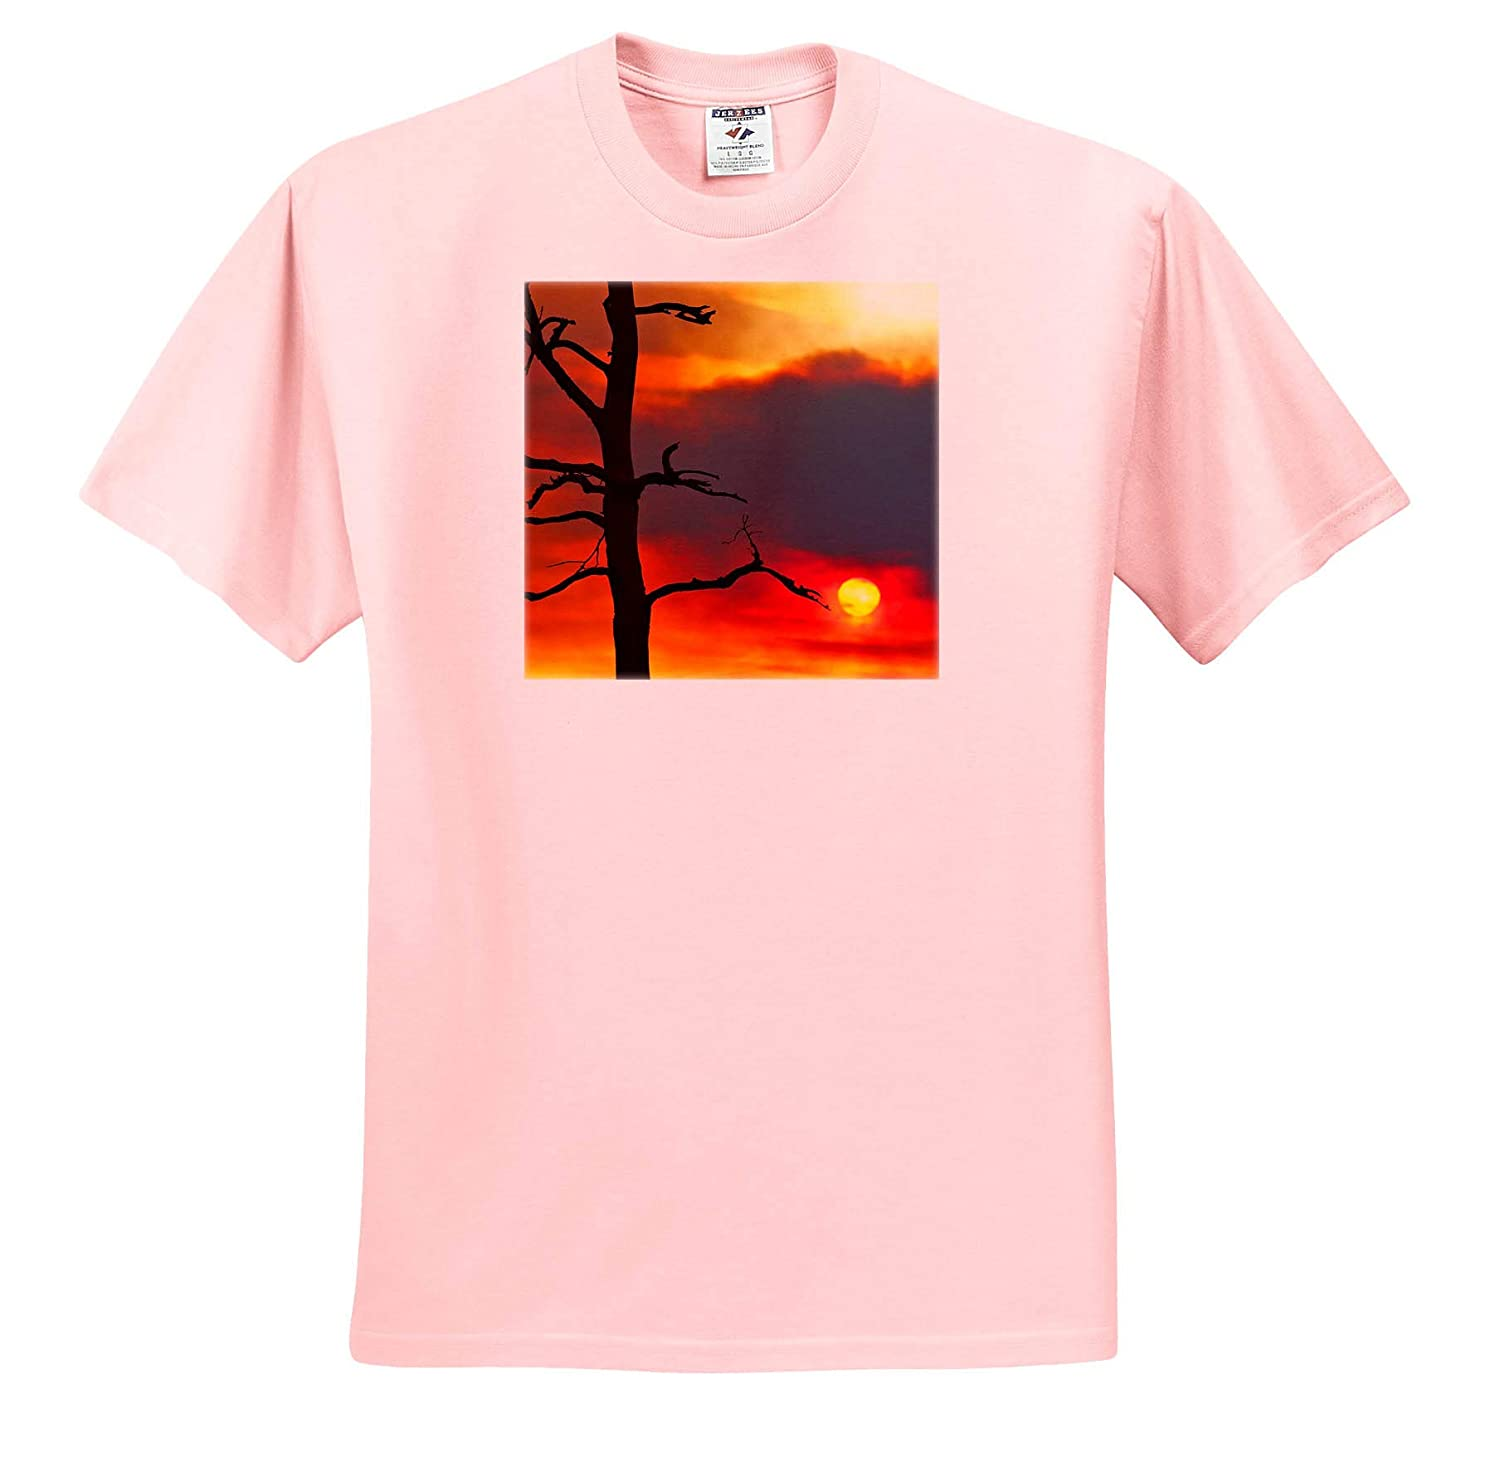 Nature - T-Shirts Photo of The Sun Setting in Smoke After a fire in The Pine barrens 3dRose Stamp City